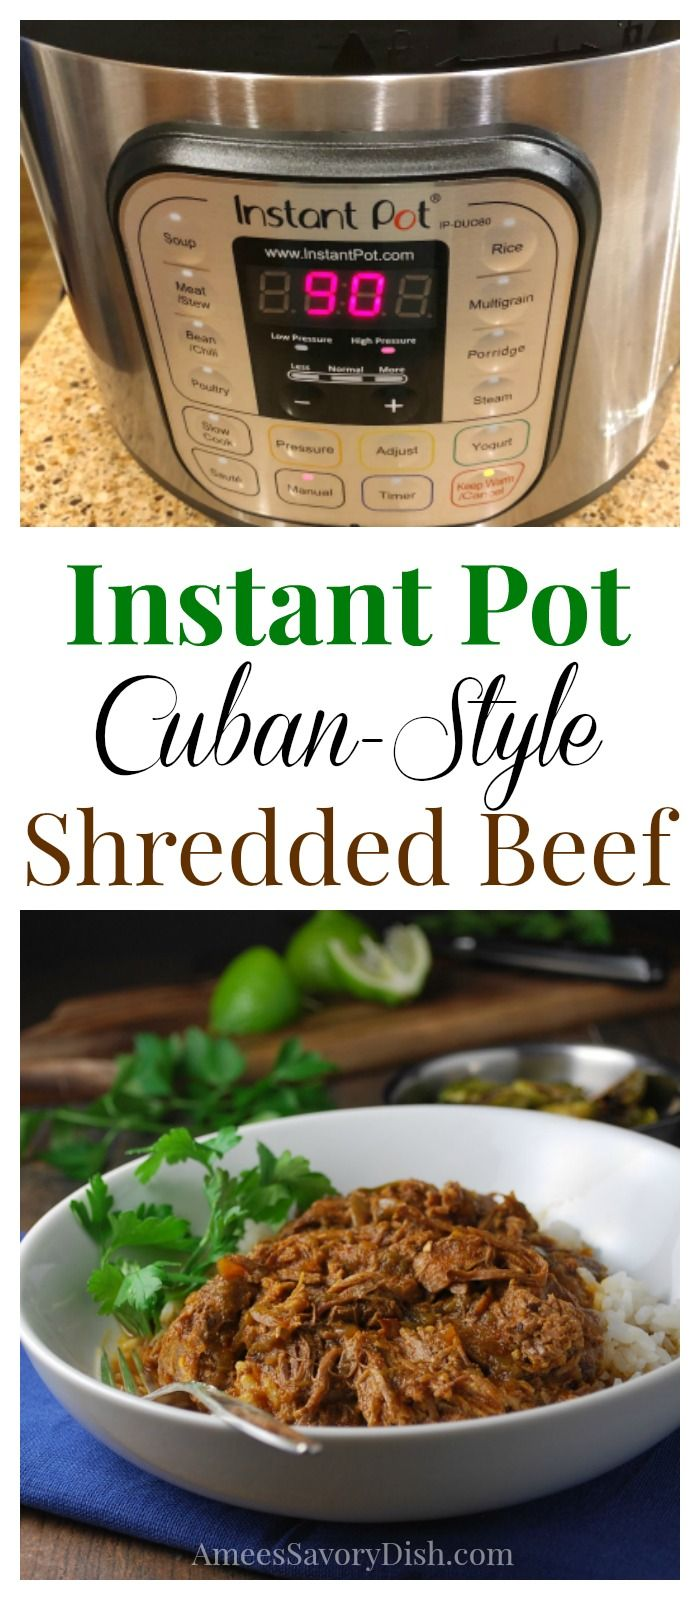 Instant Pot Cuban-Style Shredded Beef recipe #instantpot #instantpotbeef #beefrecipe